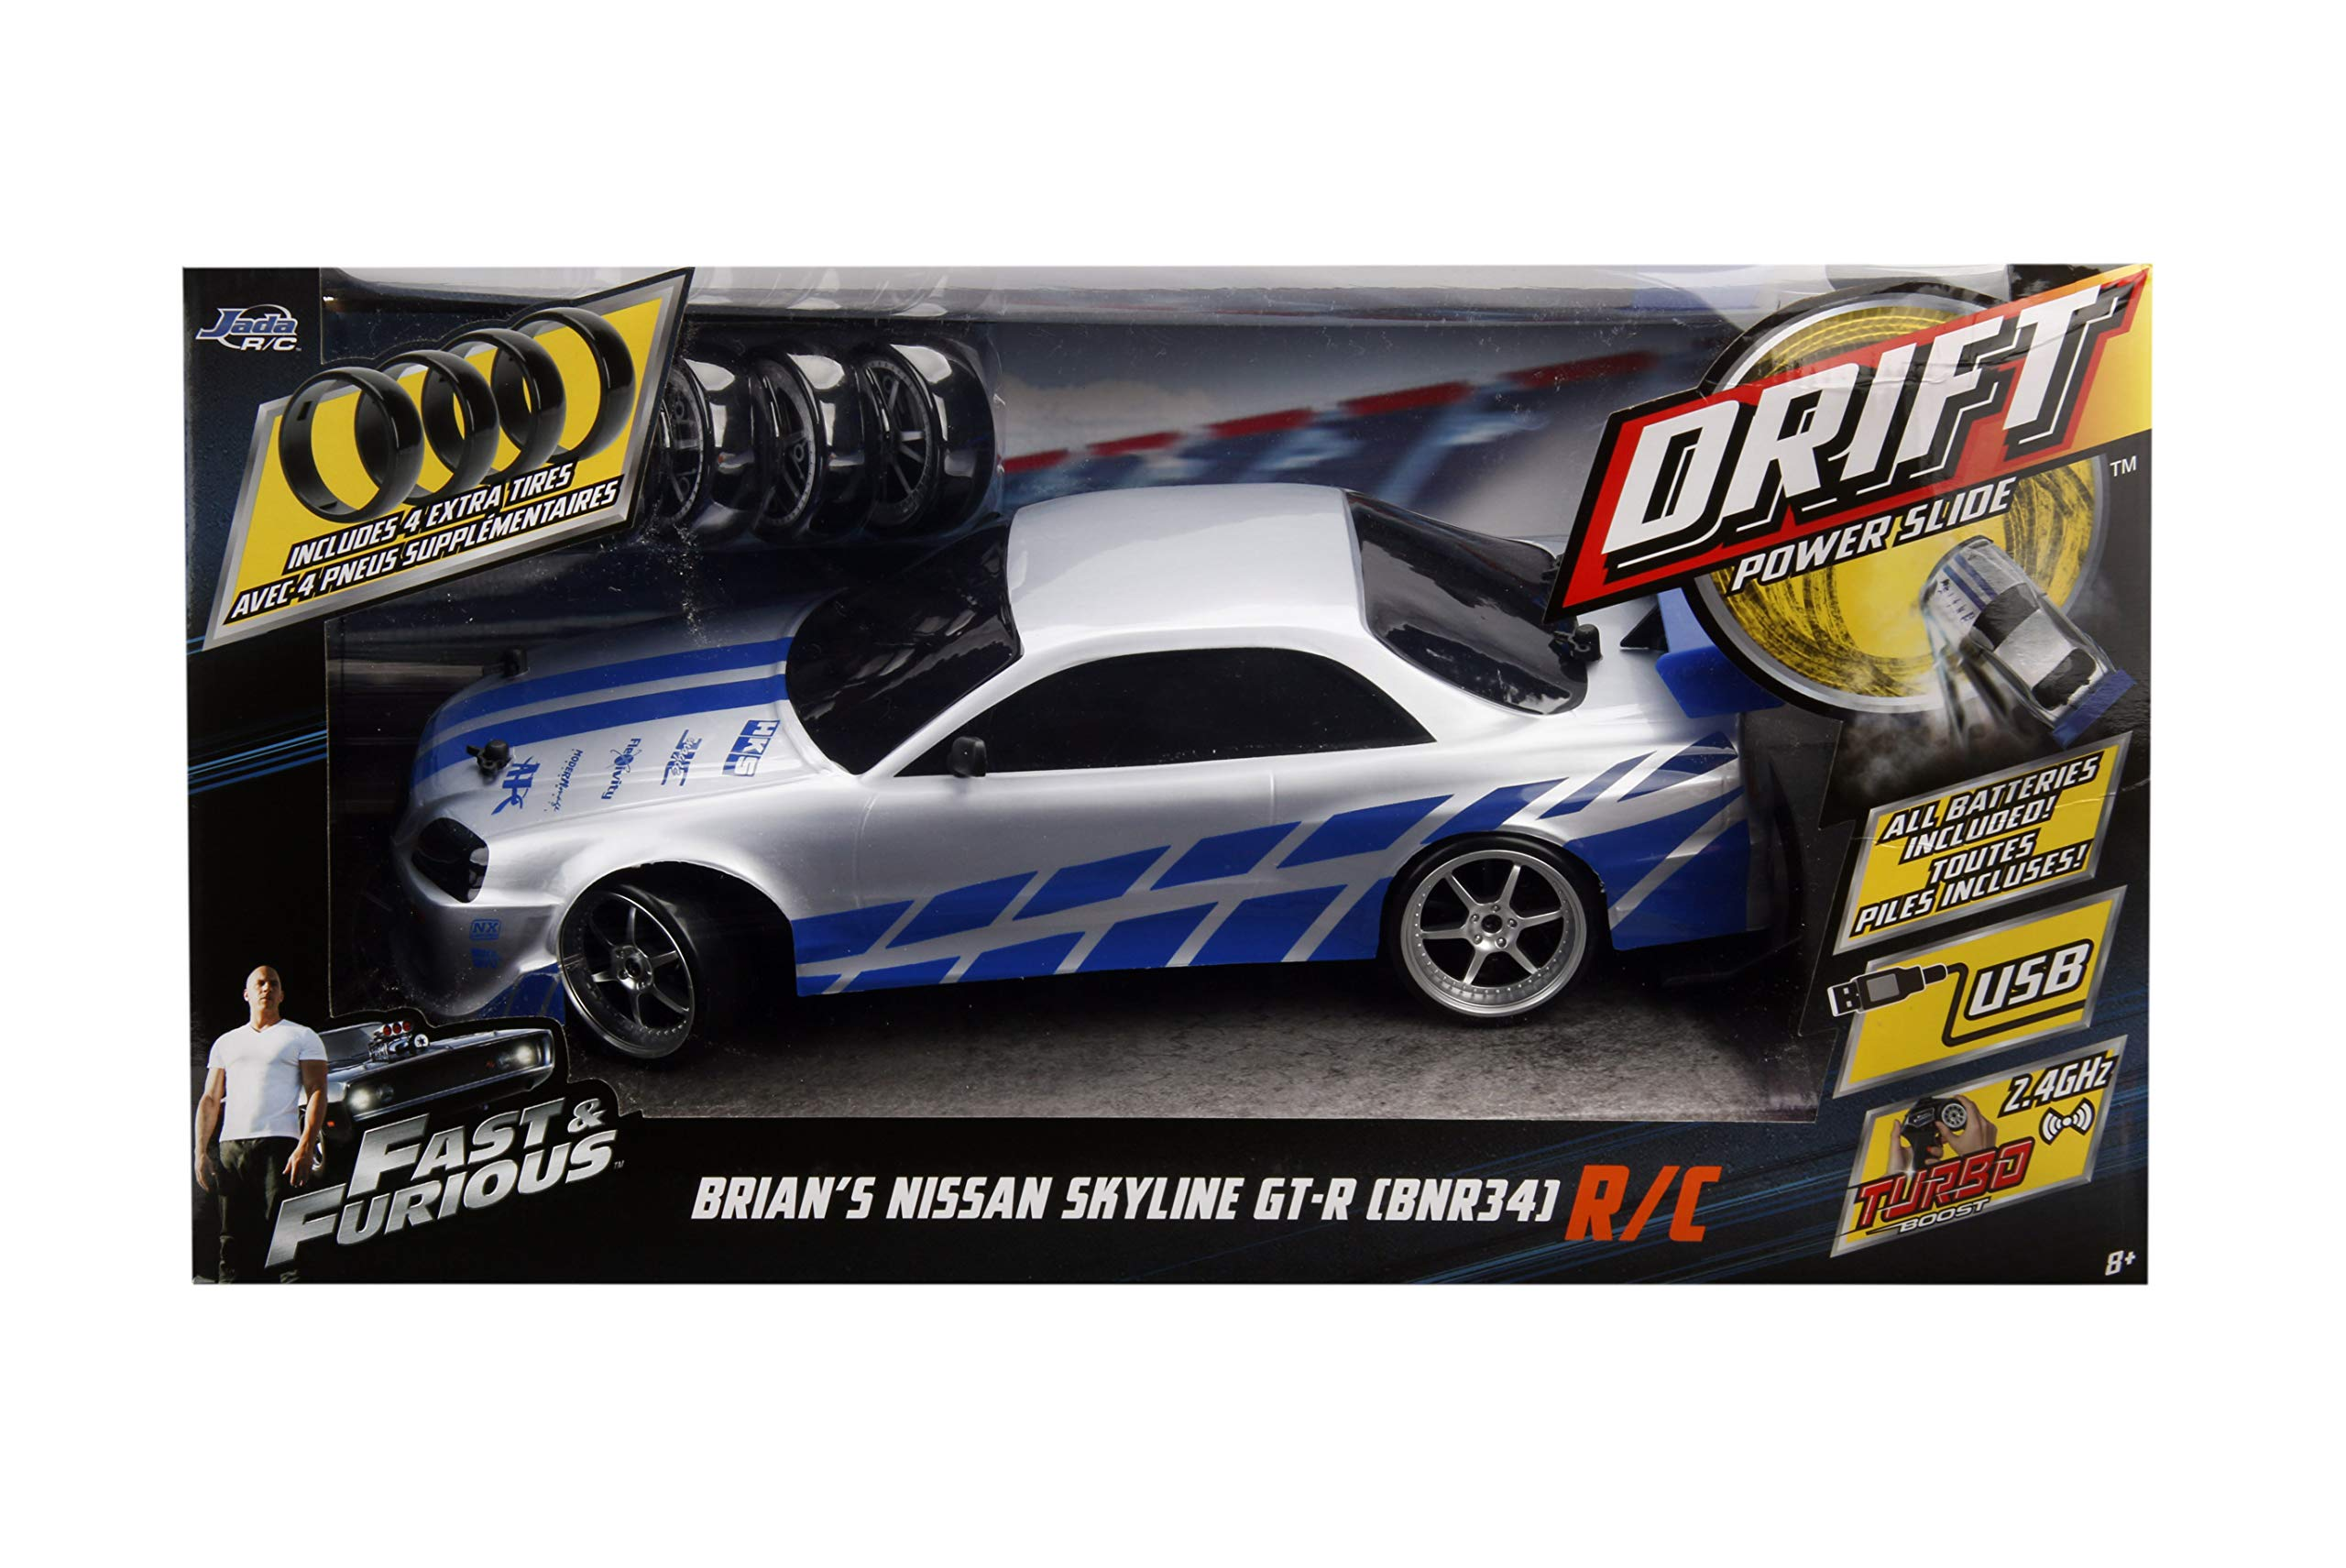 Jada 99701 Toys Fast & Furious Brian's Nissan Skyline GT-R (BN34) Drift Power Slide RC Radio Remote Control Toy Race Car with Extra Tires, 1:10 Scale, Silver/Blue by Jada (Image #6)